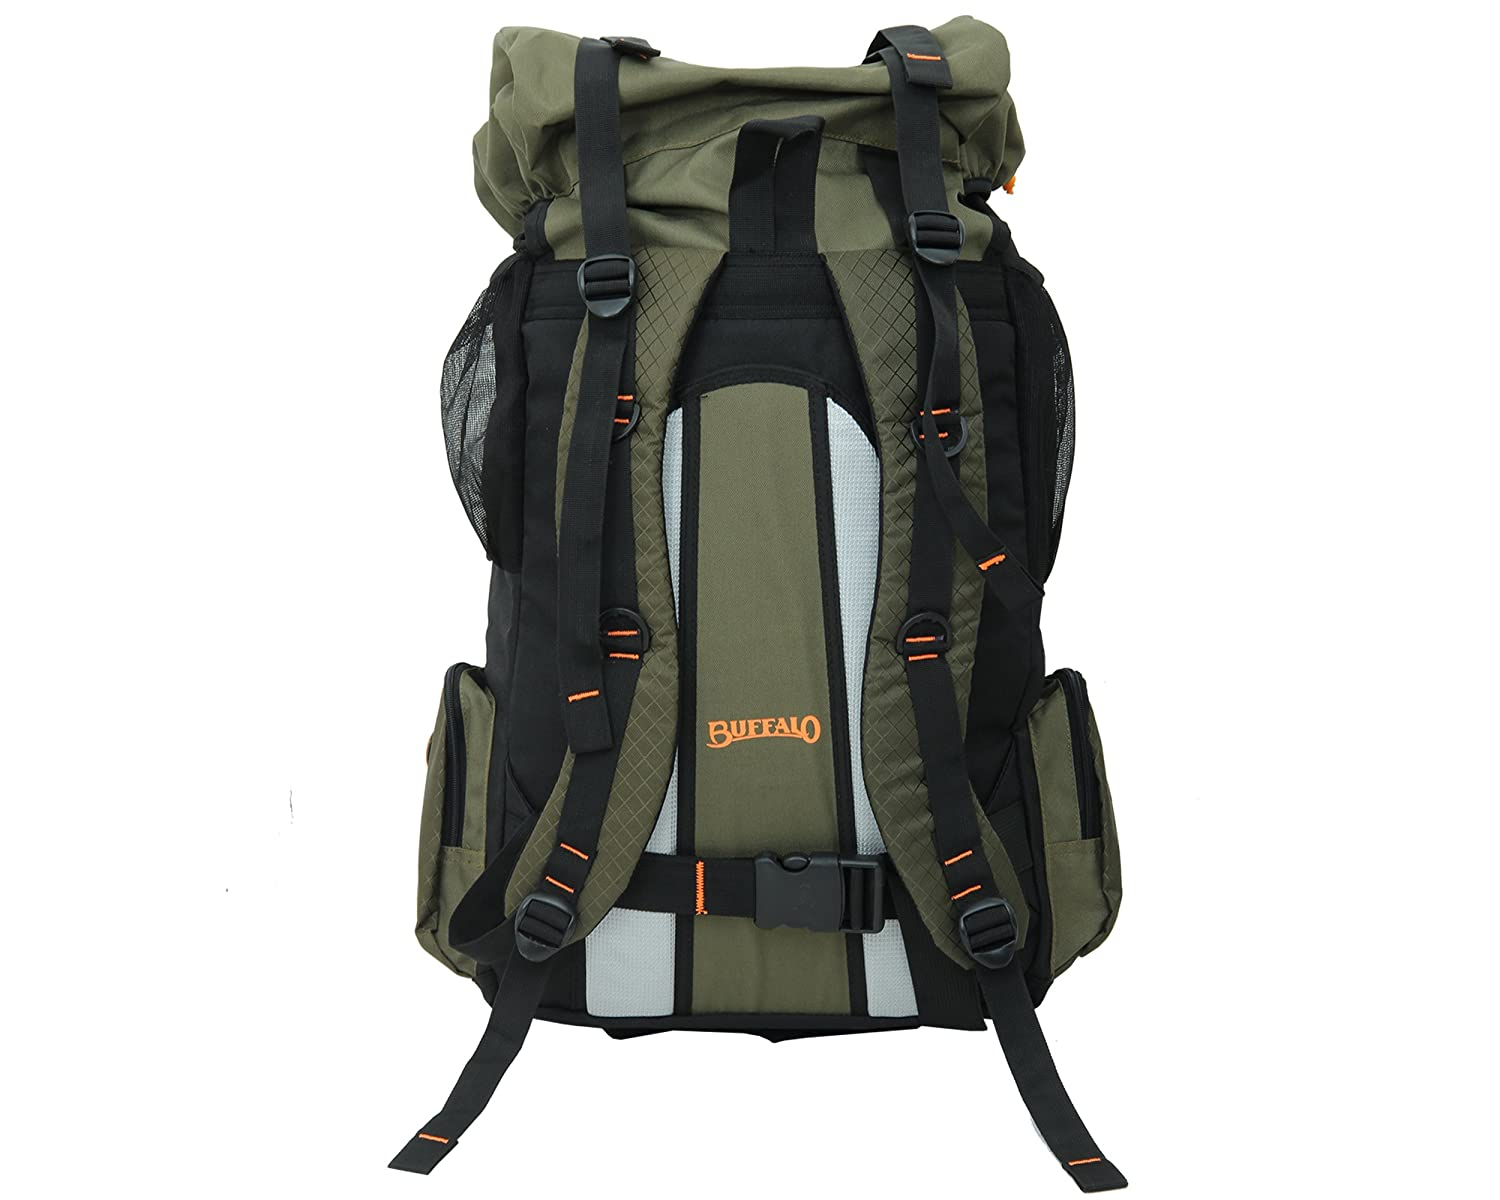 Buffalo Camptrek Polyester Hiking Backpack 65 Cm H X 32 Voucer Shodaqo Nuril L 19 B Green Bags Wallets Luggage